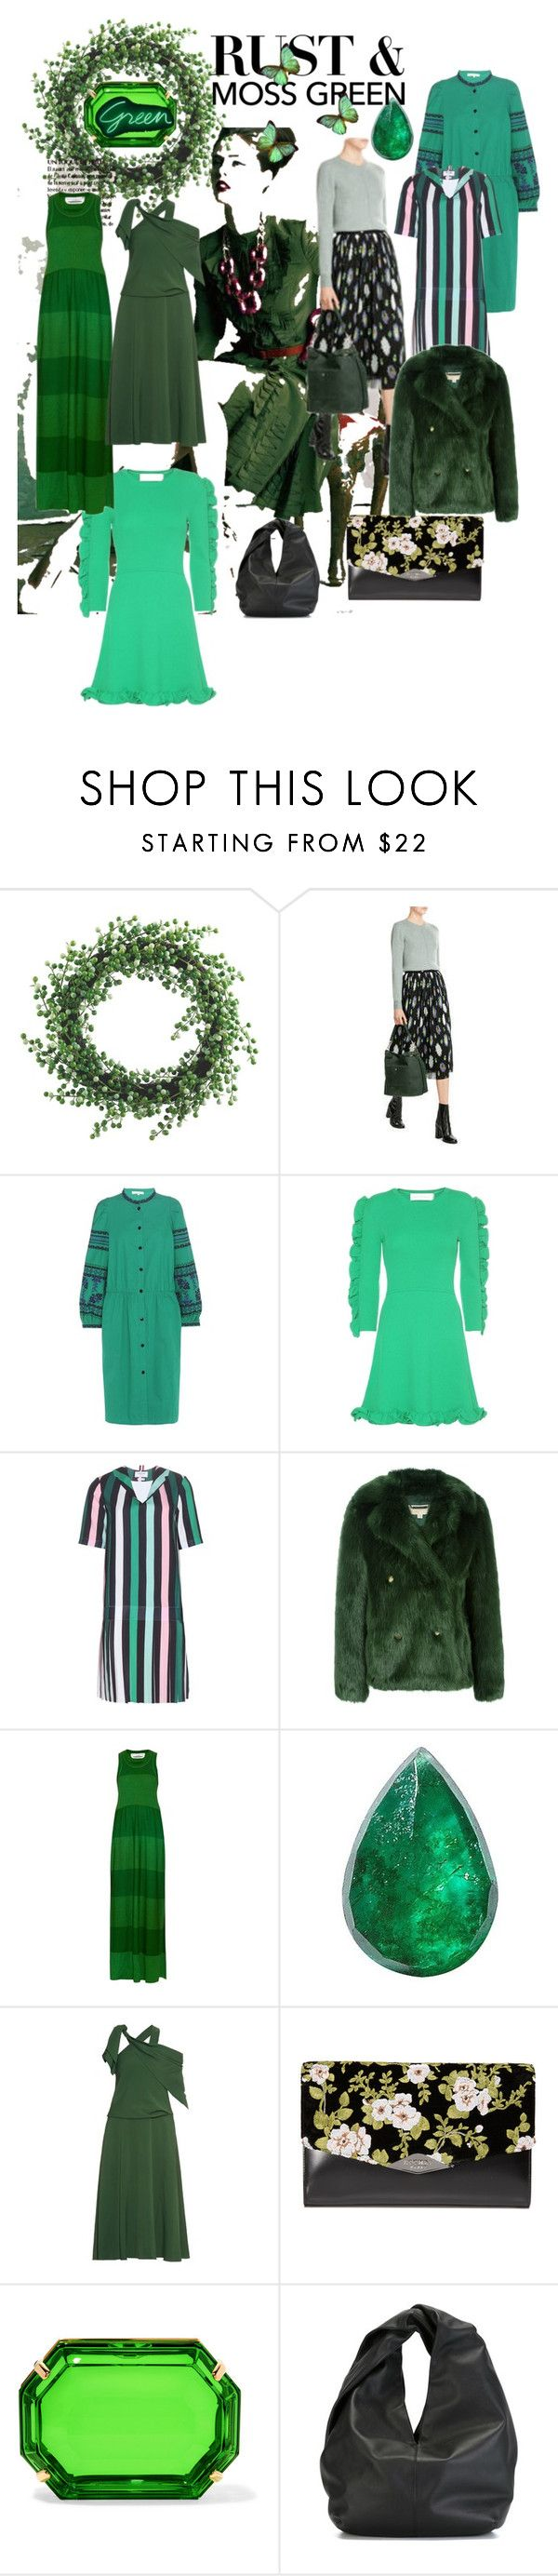 """""""Rust & Moss Green."""" by lalu-papa ❤ liked on Polyvore featuring rag & bone, Vanessa Bruno, Victoria, Victoria Beckham, Thom Browne, MICHAEL Michael Kors, Sonia Rykiel, Loquet, Rosie Assoulin, Rochas and Charlotte Olympia"""